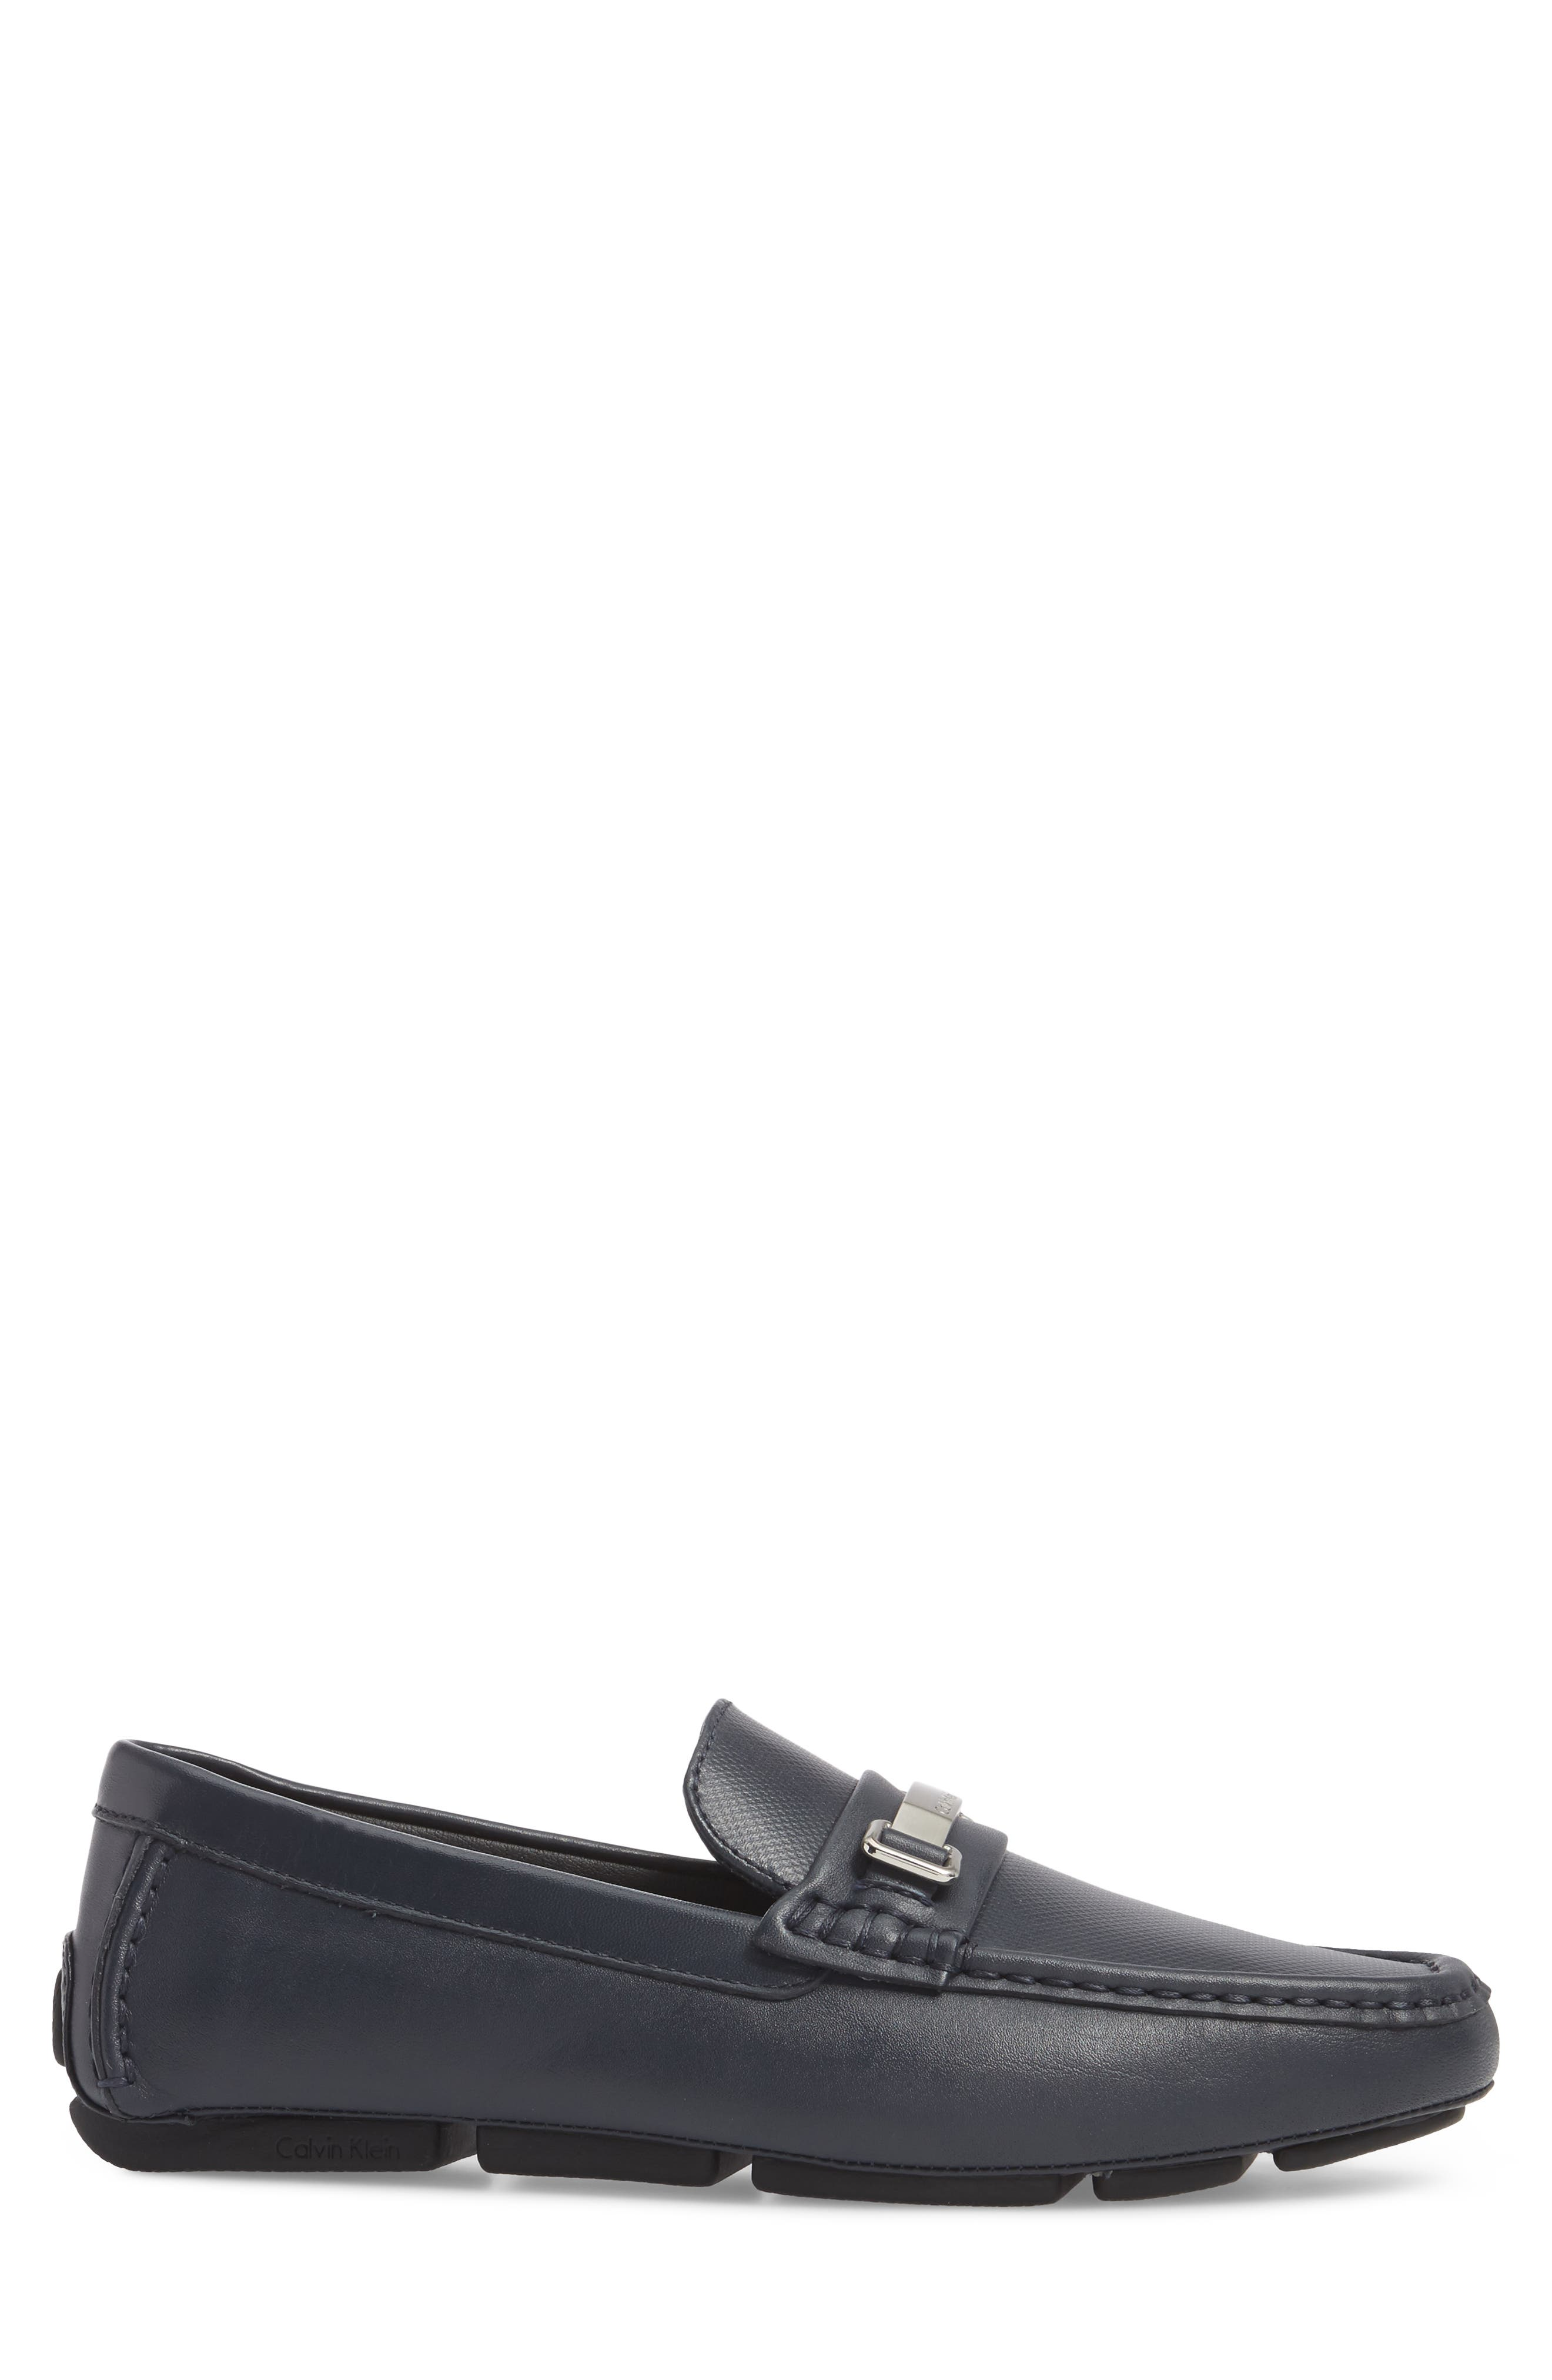 Maddix Textured Driving Moccasin,                             Alternate thumbnail 3, color,                             Dark Navy Leather